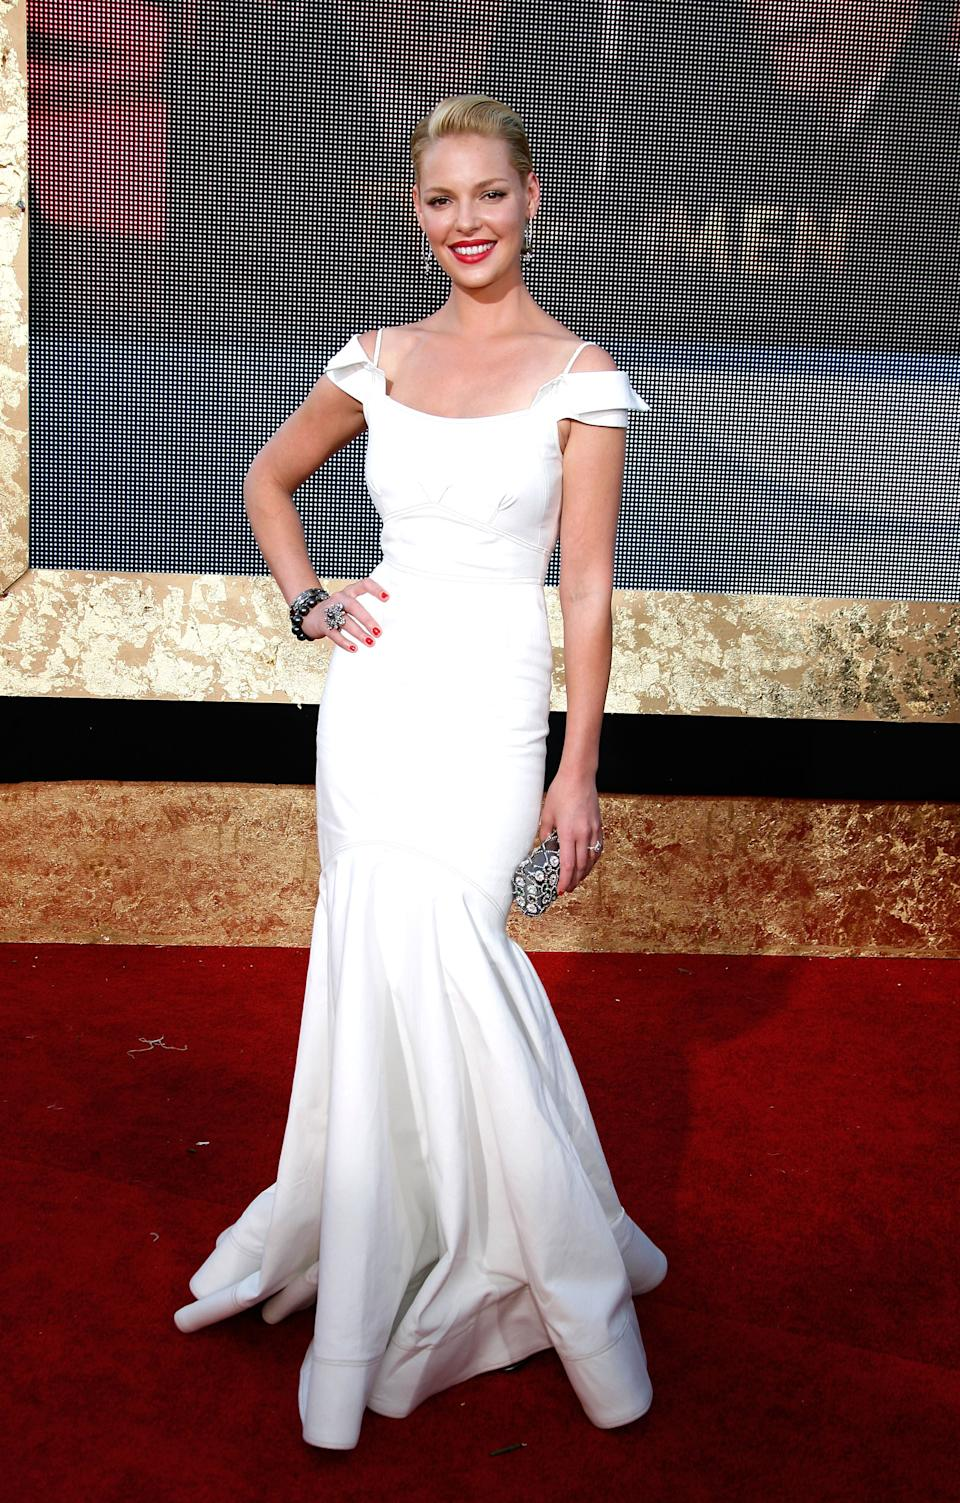 """<p>Katherine Heigl picked up the Emmy for """"Outstanding Supporting Actress in a Drama Series"""" in 2007 wearing a white gown by Zac Posen (Image via Getty Images)</p>"""